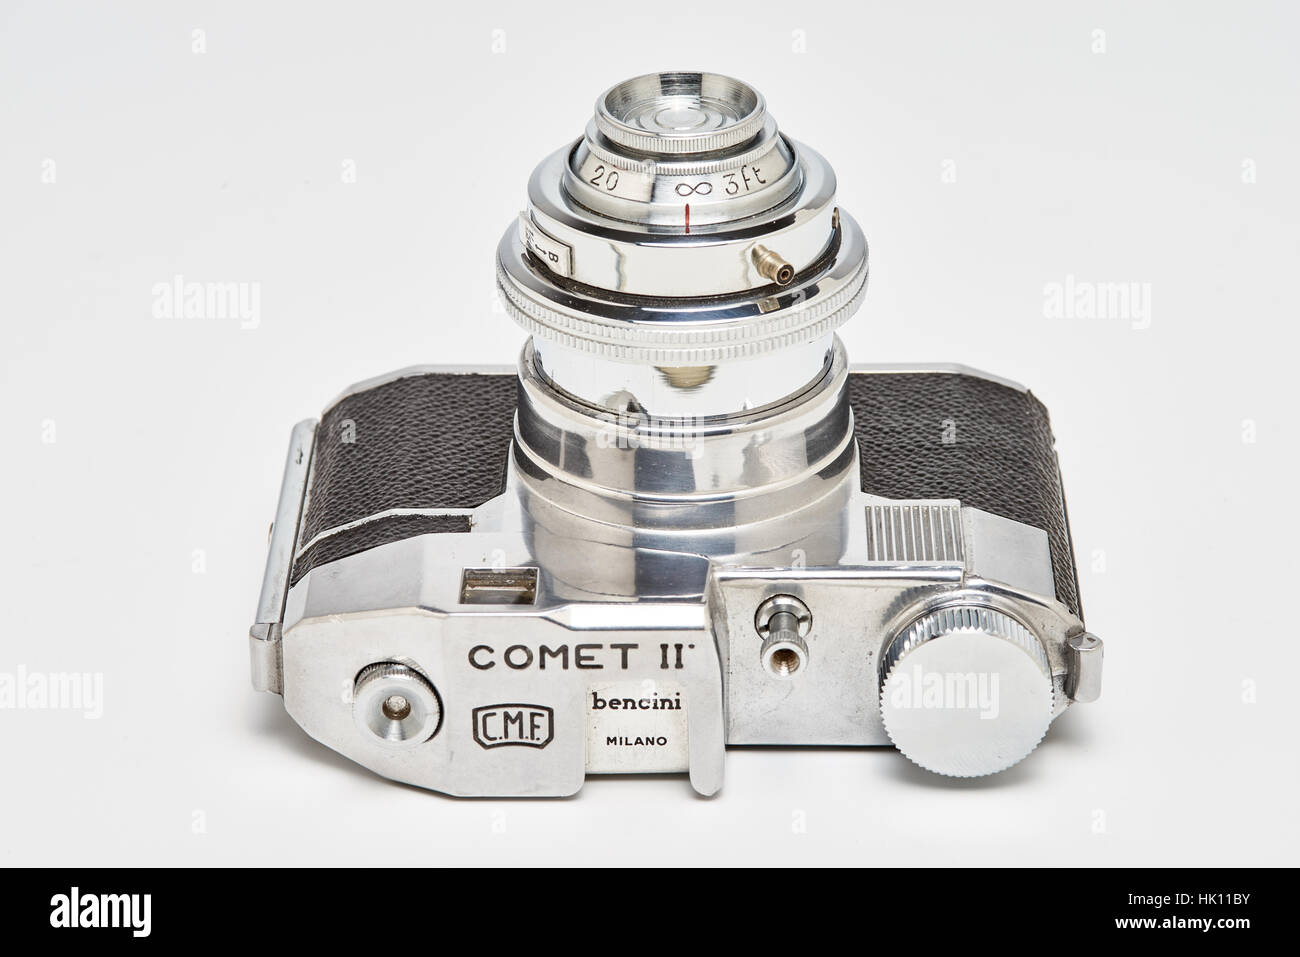 The Comet II was produced circa 1951 in Milano, Italy. It has a cast aluminum body with telescoping front lens. - Stock Image